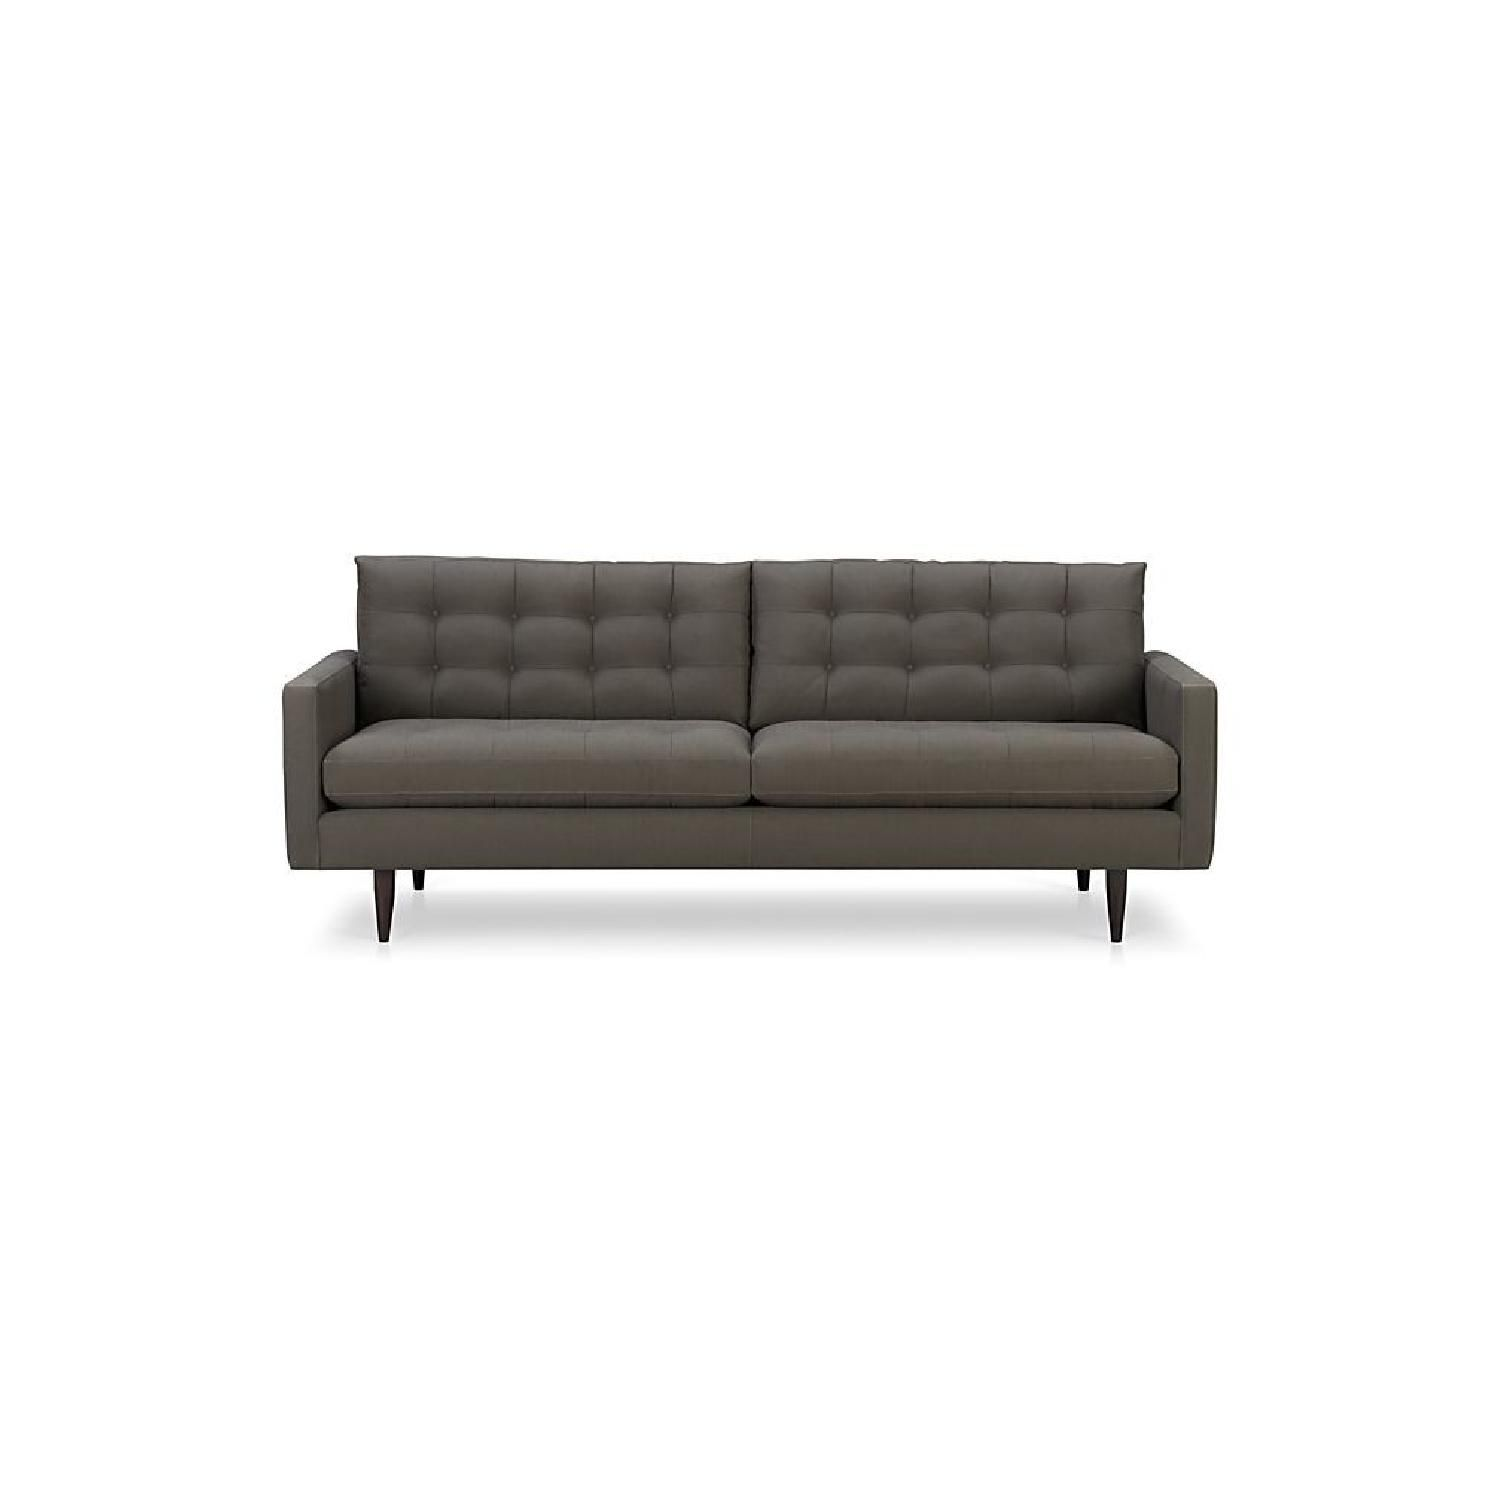 Crate u0026 Barrel Petrie Camden Sofa in Graphite  sc 1 st  Pinterest : crate and barrel petrie sectional - Sectionals, Sofas & Couches